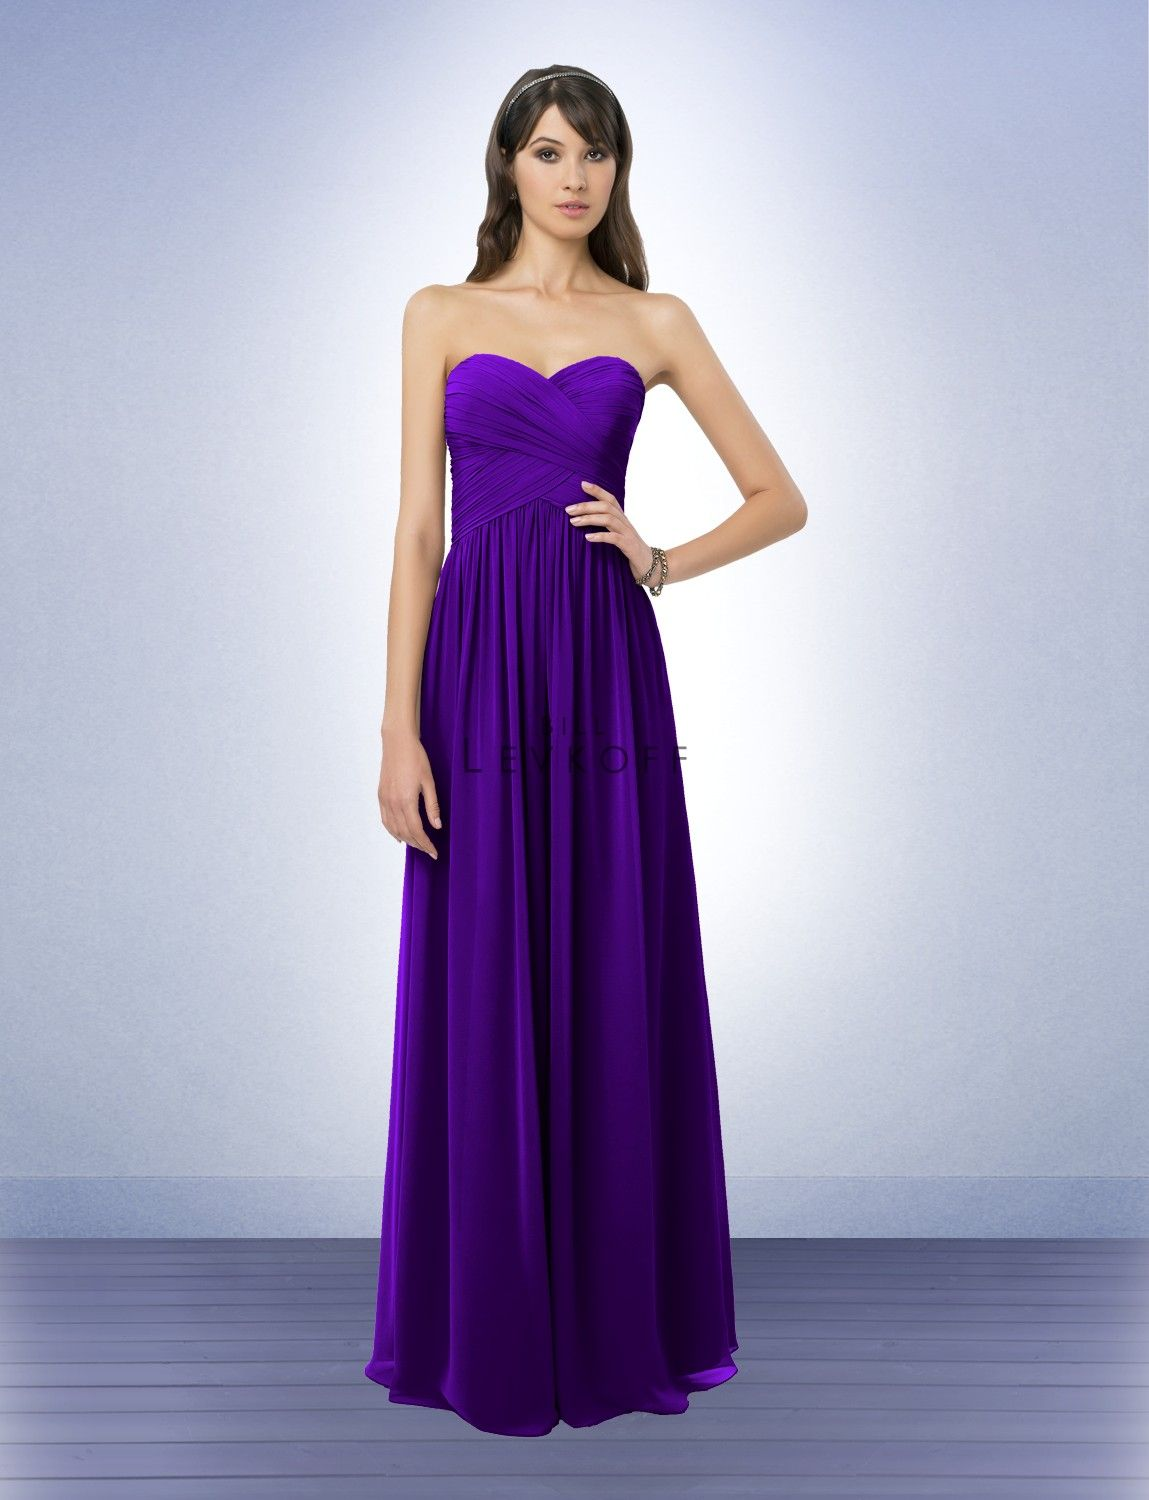 Bridesmaid Dress Again I Love This Idea Of Royal Purple As A Wedding Color